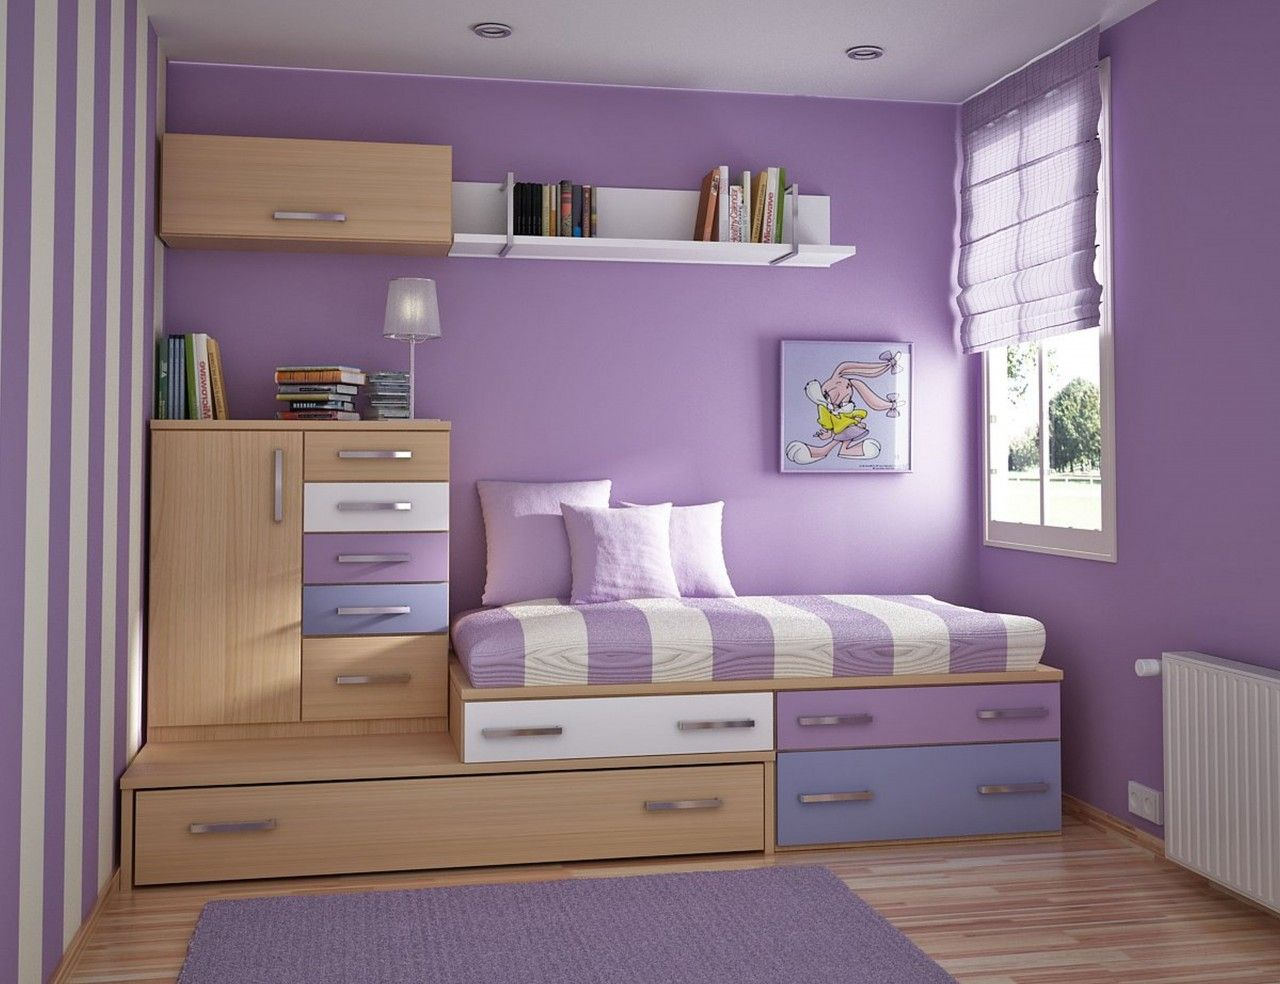 Teenage Girl Bedroom Ideas For Small Rooms pleasing 70+ purple bedroom interior decorating design of top 25+